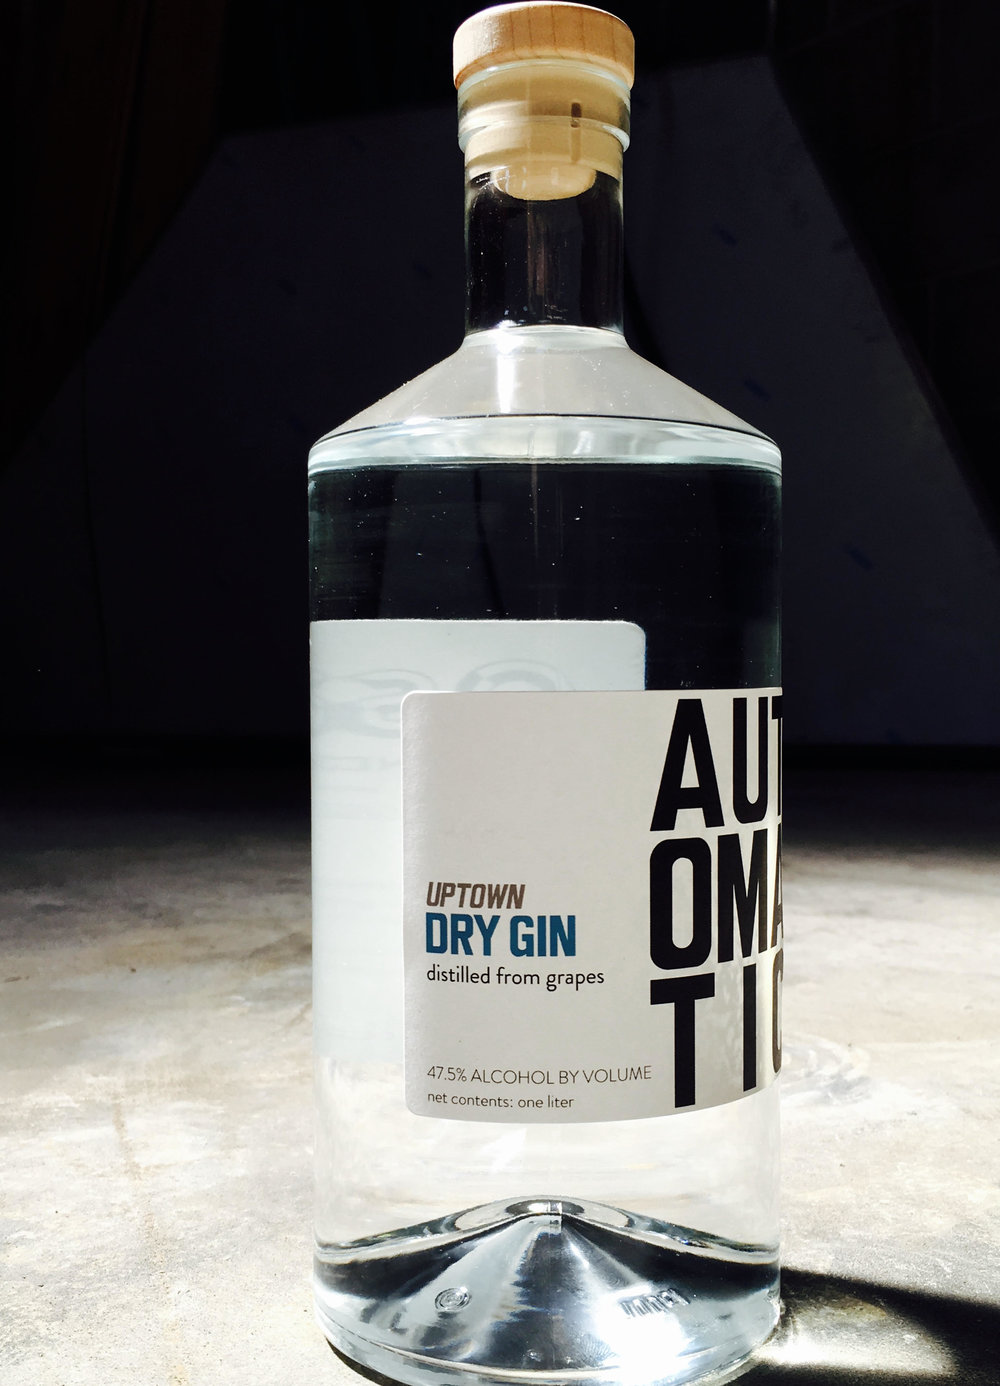 UPTOWN DRY GIN COCKTAIL IDEAS